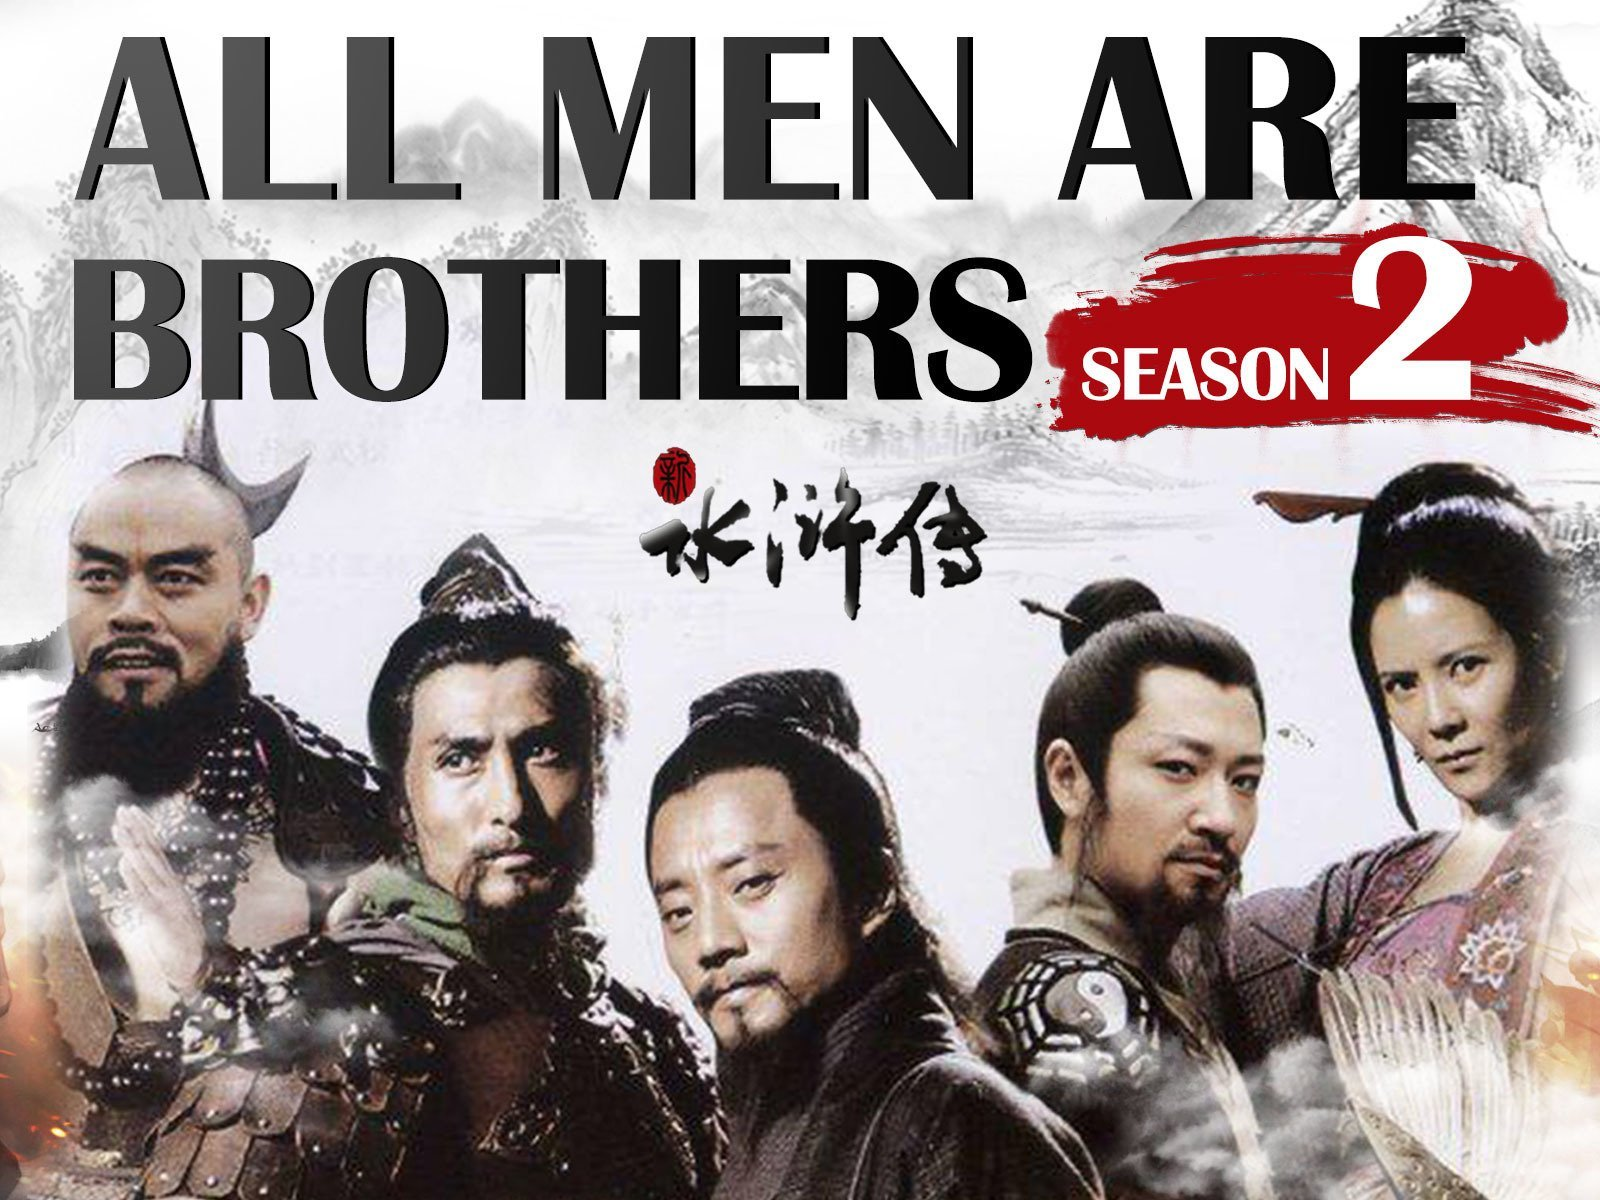 All Men are Brothers - Seaon 2 - Season 2